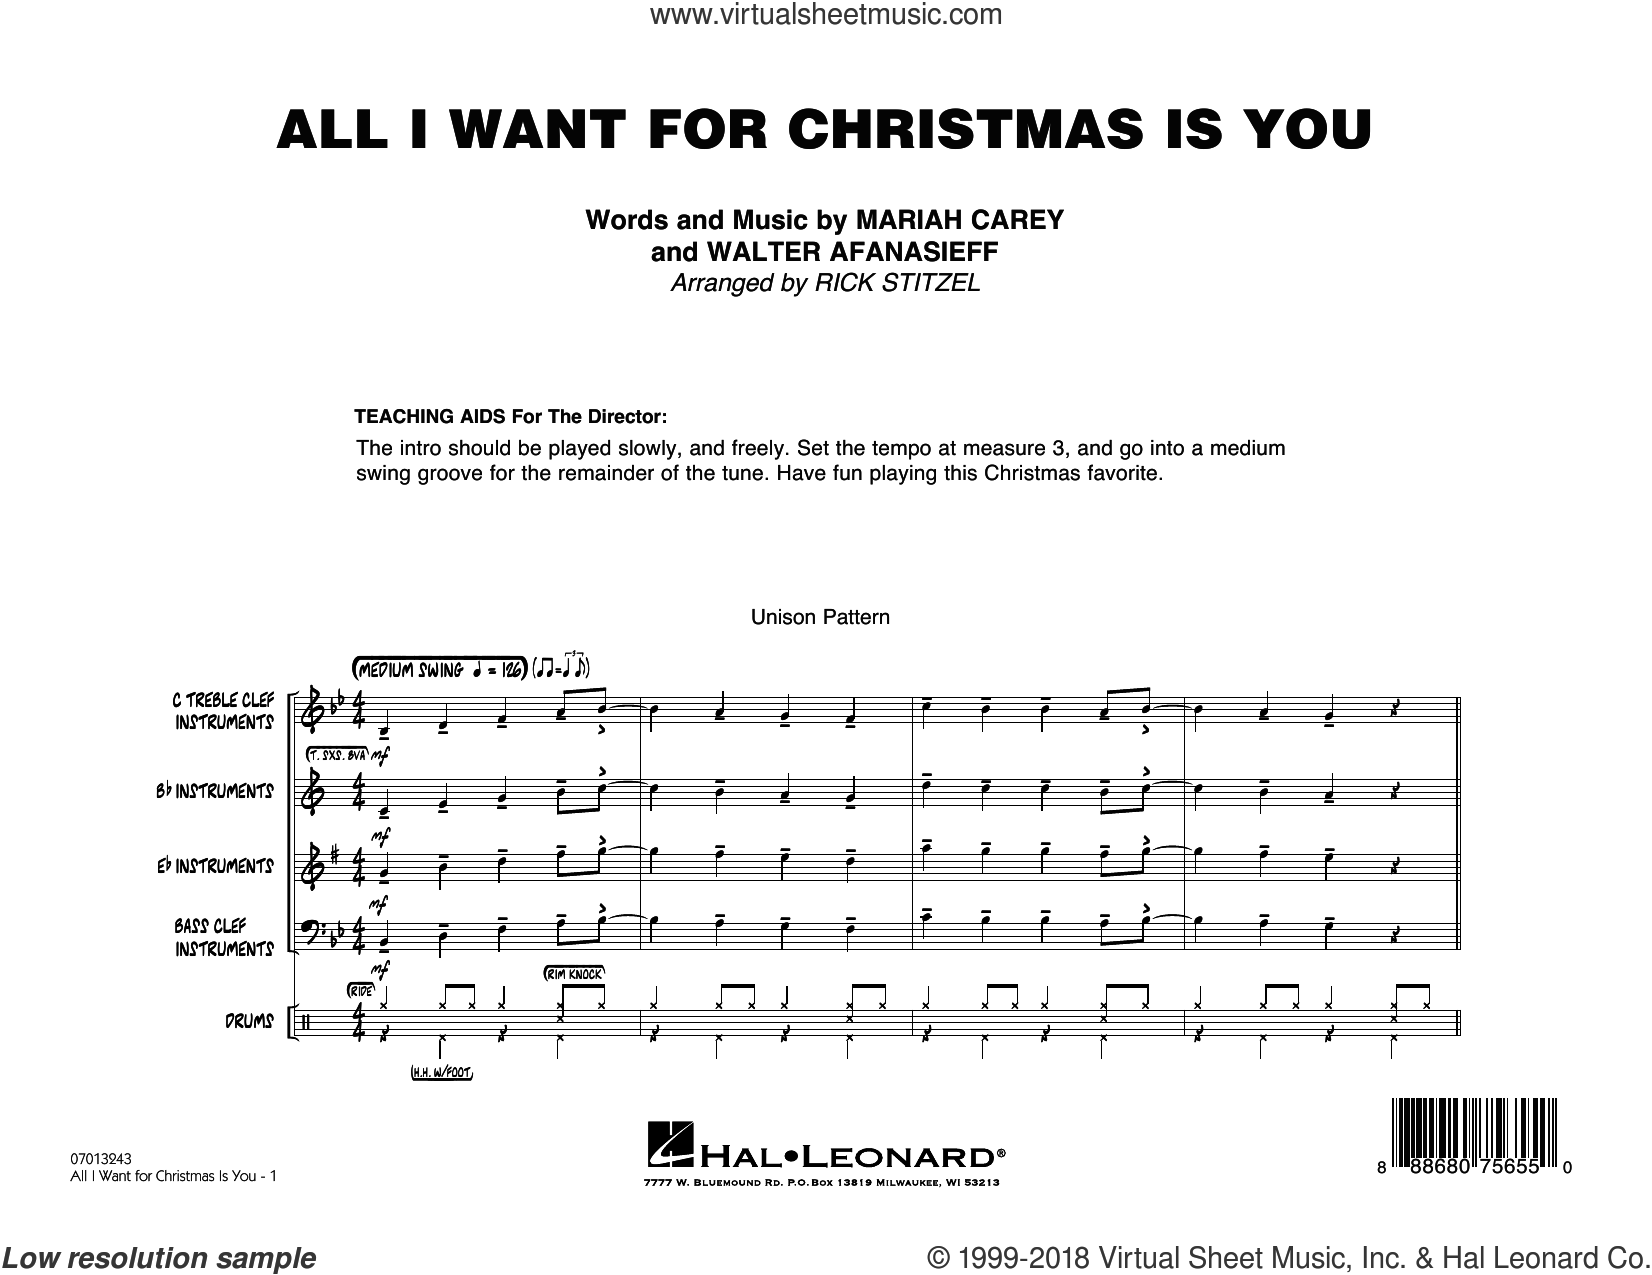 All I Want For Christmas Is You (COMPLETE) sheet music for jazz band by Mariah Carey, Rick Stitzel and Walter Afanasieff, intermediate skill level